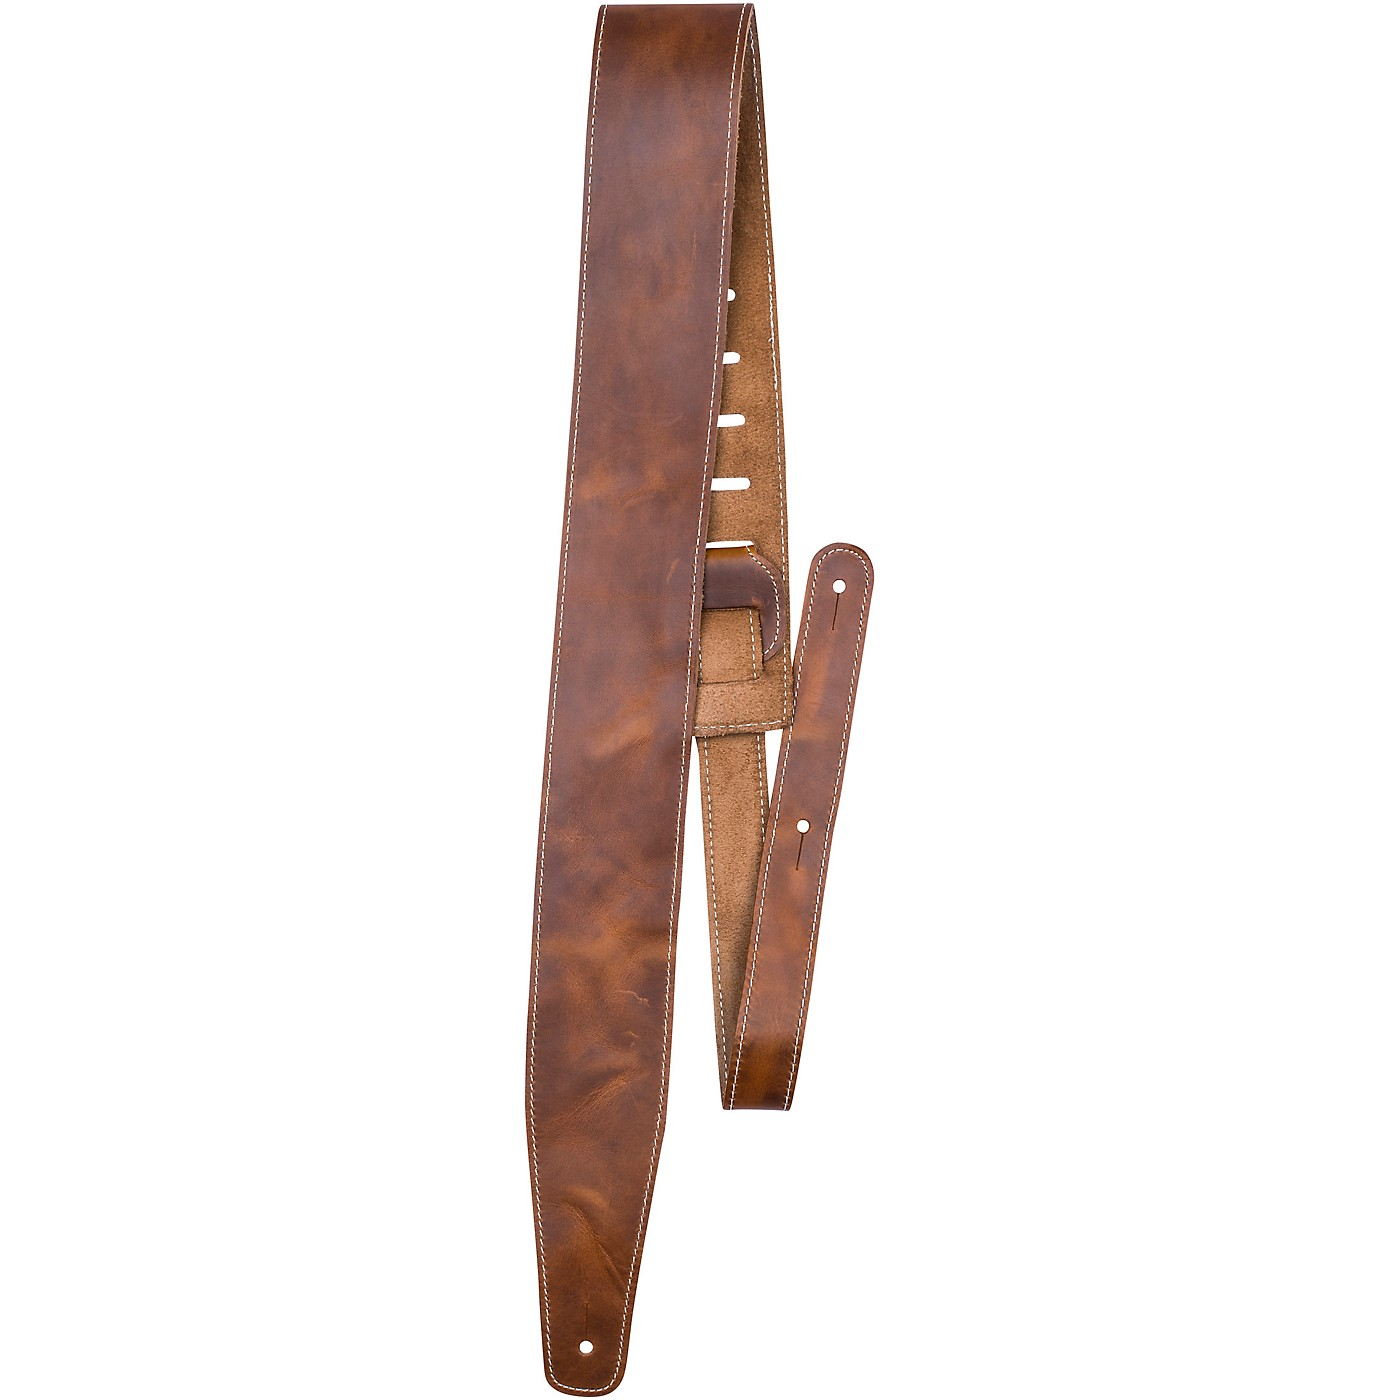 Perri's Oil Leather Guitar Strap With Contrast Stitching thumbnail